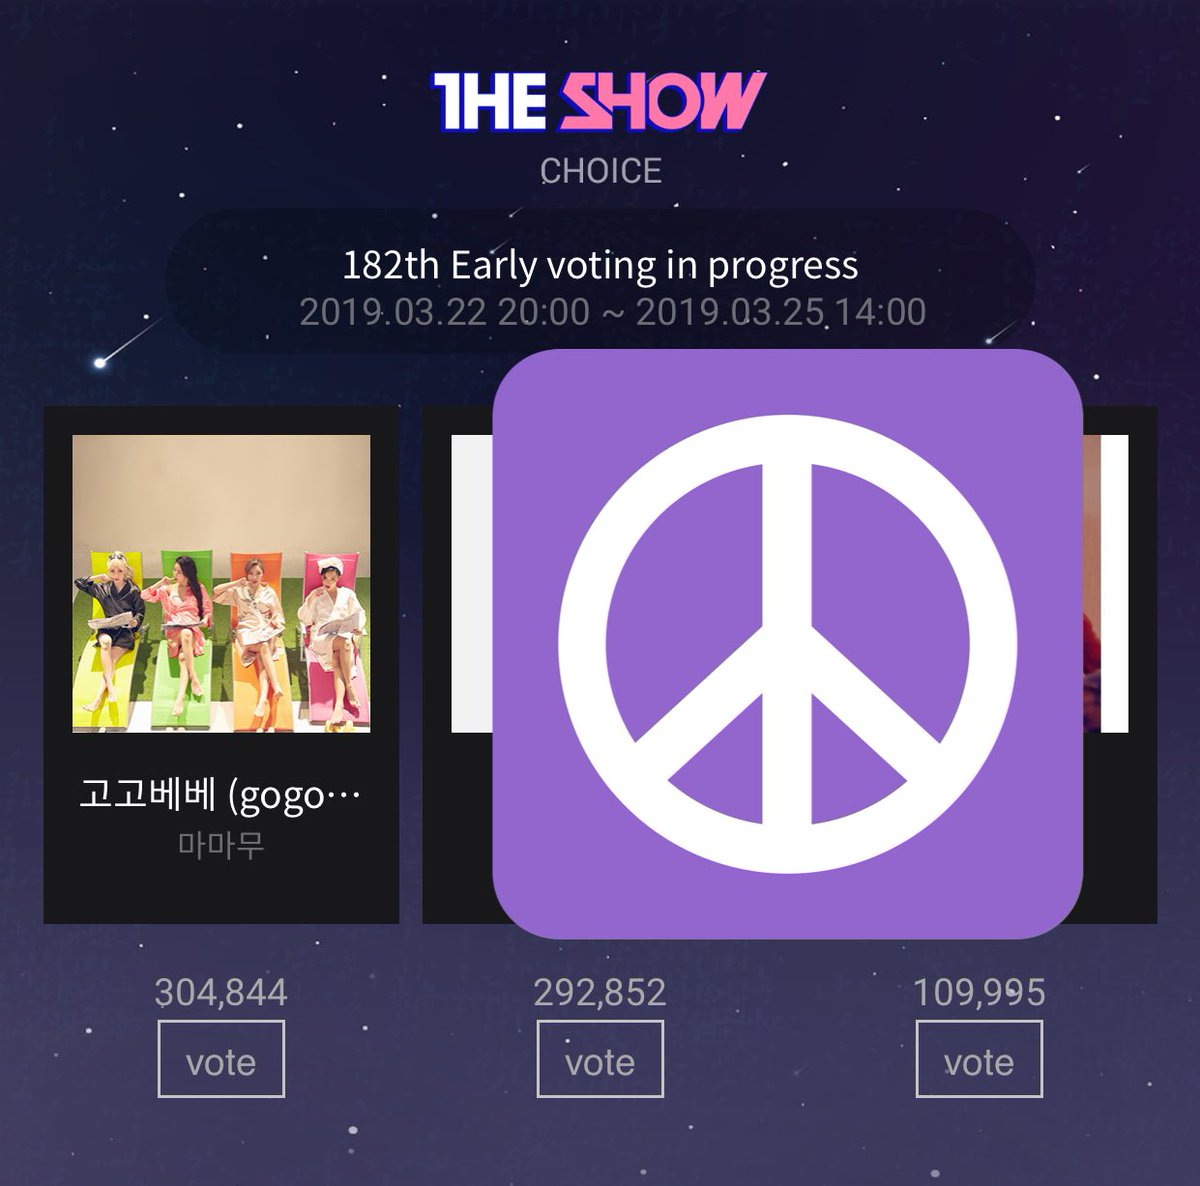 GOGOBEBE's digital is not strong. So please vote &amp; stream their MVs and music show stages  Idol Champ   http:// mbcplus.idolchamp.com/app_proxy.html ?type=vote&amp;id=vote_1098_489 &nbsp; …   MCountdown   https:// m.mwave.me/shar/app?viewT ype=N&amp;viewId=MA_MCT_01&amp;viewURL=L21jb3VudGRvd24vcHJldm90aW5nL3Jlc3VsdA==&amp;p1=&amp;p2=&amp;p3= &nbsp; …   The Show Starpass App   Streaming Playlist   https://www. youtube.com/playlist?list= PLIr8Hw285CIzmmF4j_L7TV5E-hkkAXoct &nbsp; …   @RBW_MAMAMOO #마마무 #MAMAMOO #GOGOBEBE<br>http://pic.twitter.com/QfUv2zDWKZ